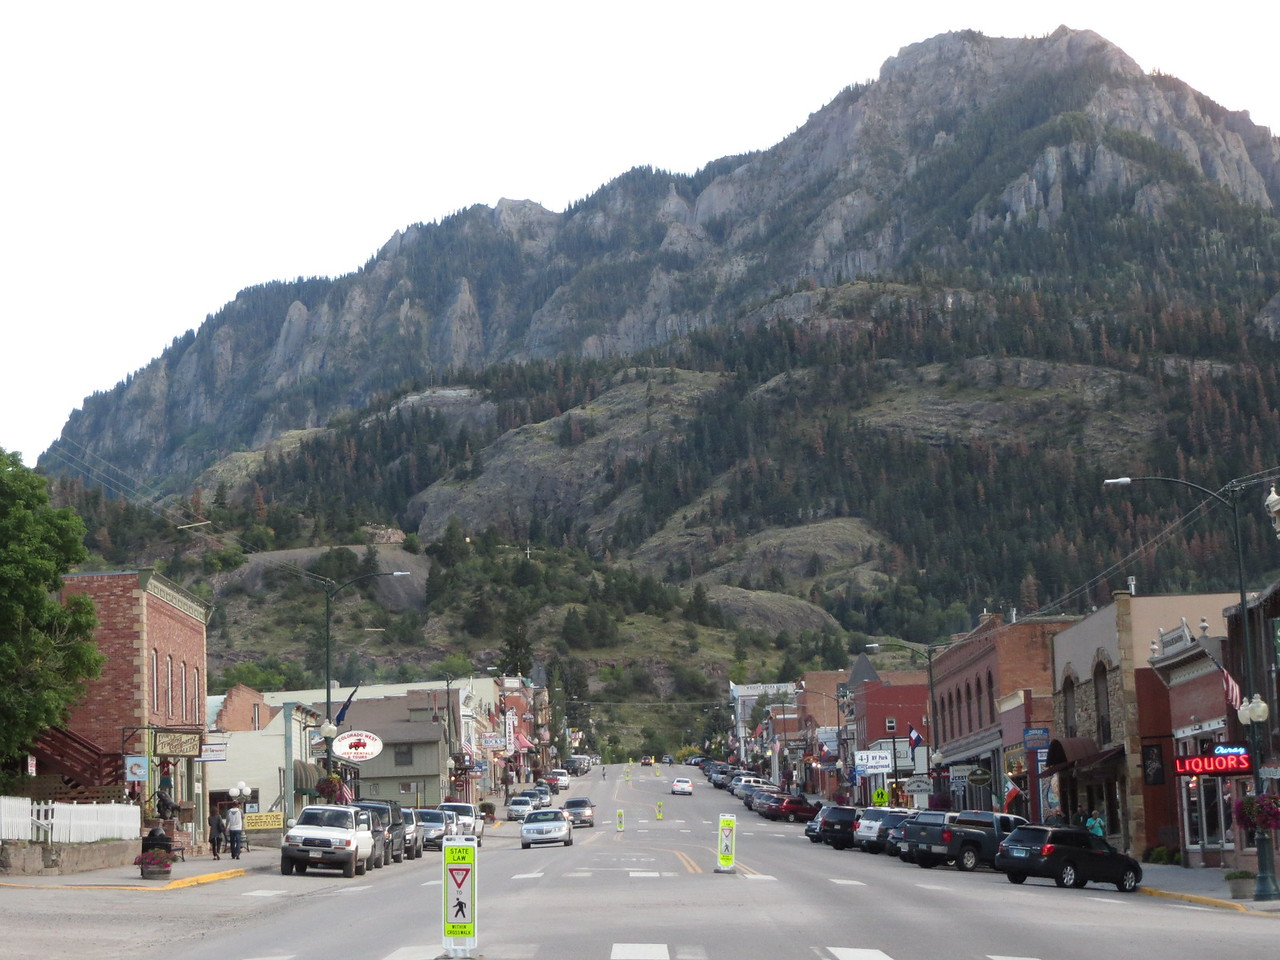 Day 4 (357 miles): Downtown Ouray.